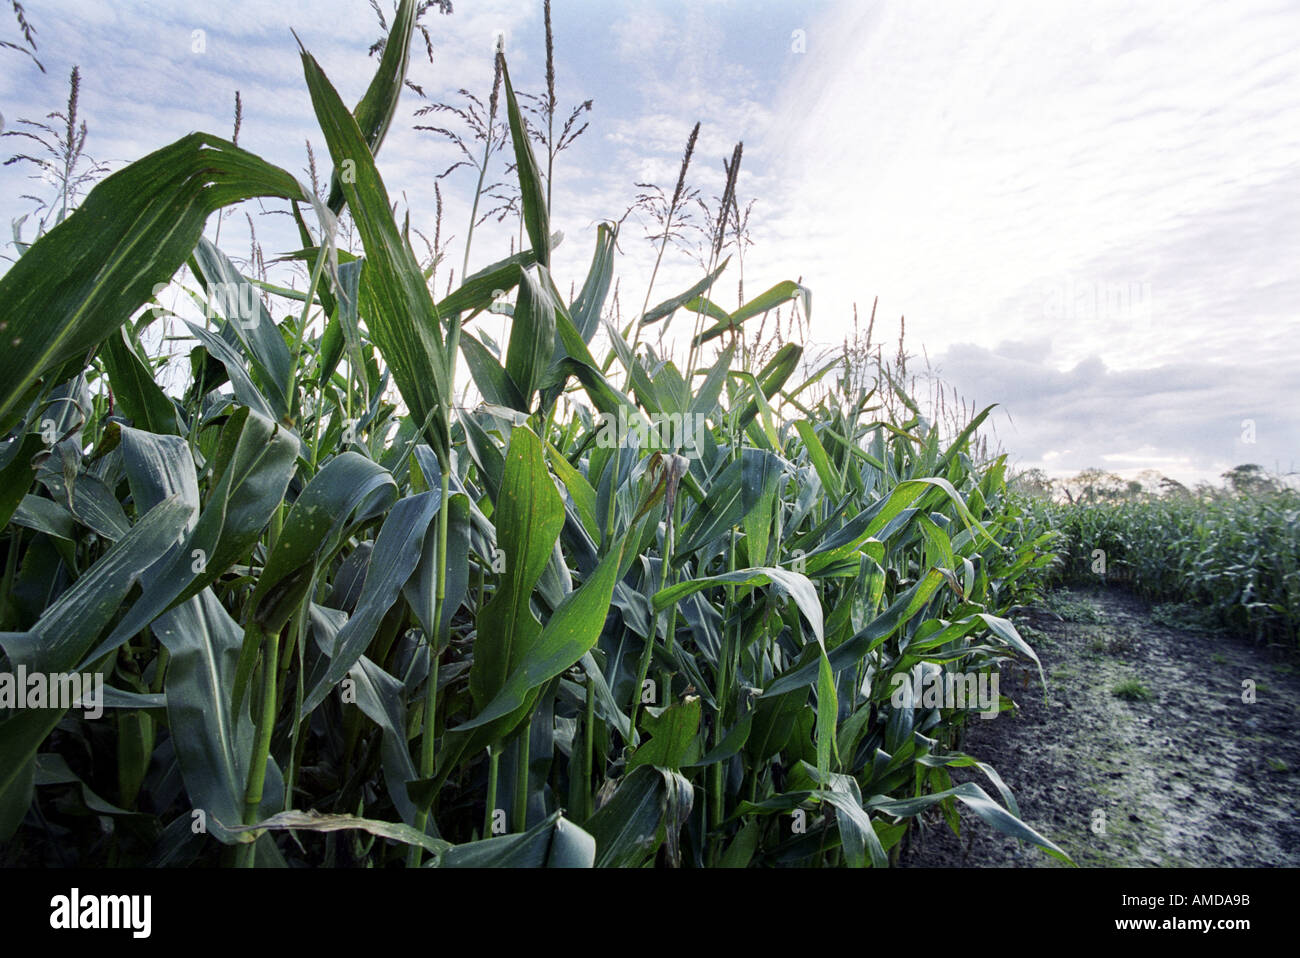 Genetically modified maize growing in a field in Shropshire in the UK - Stock Image